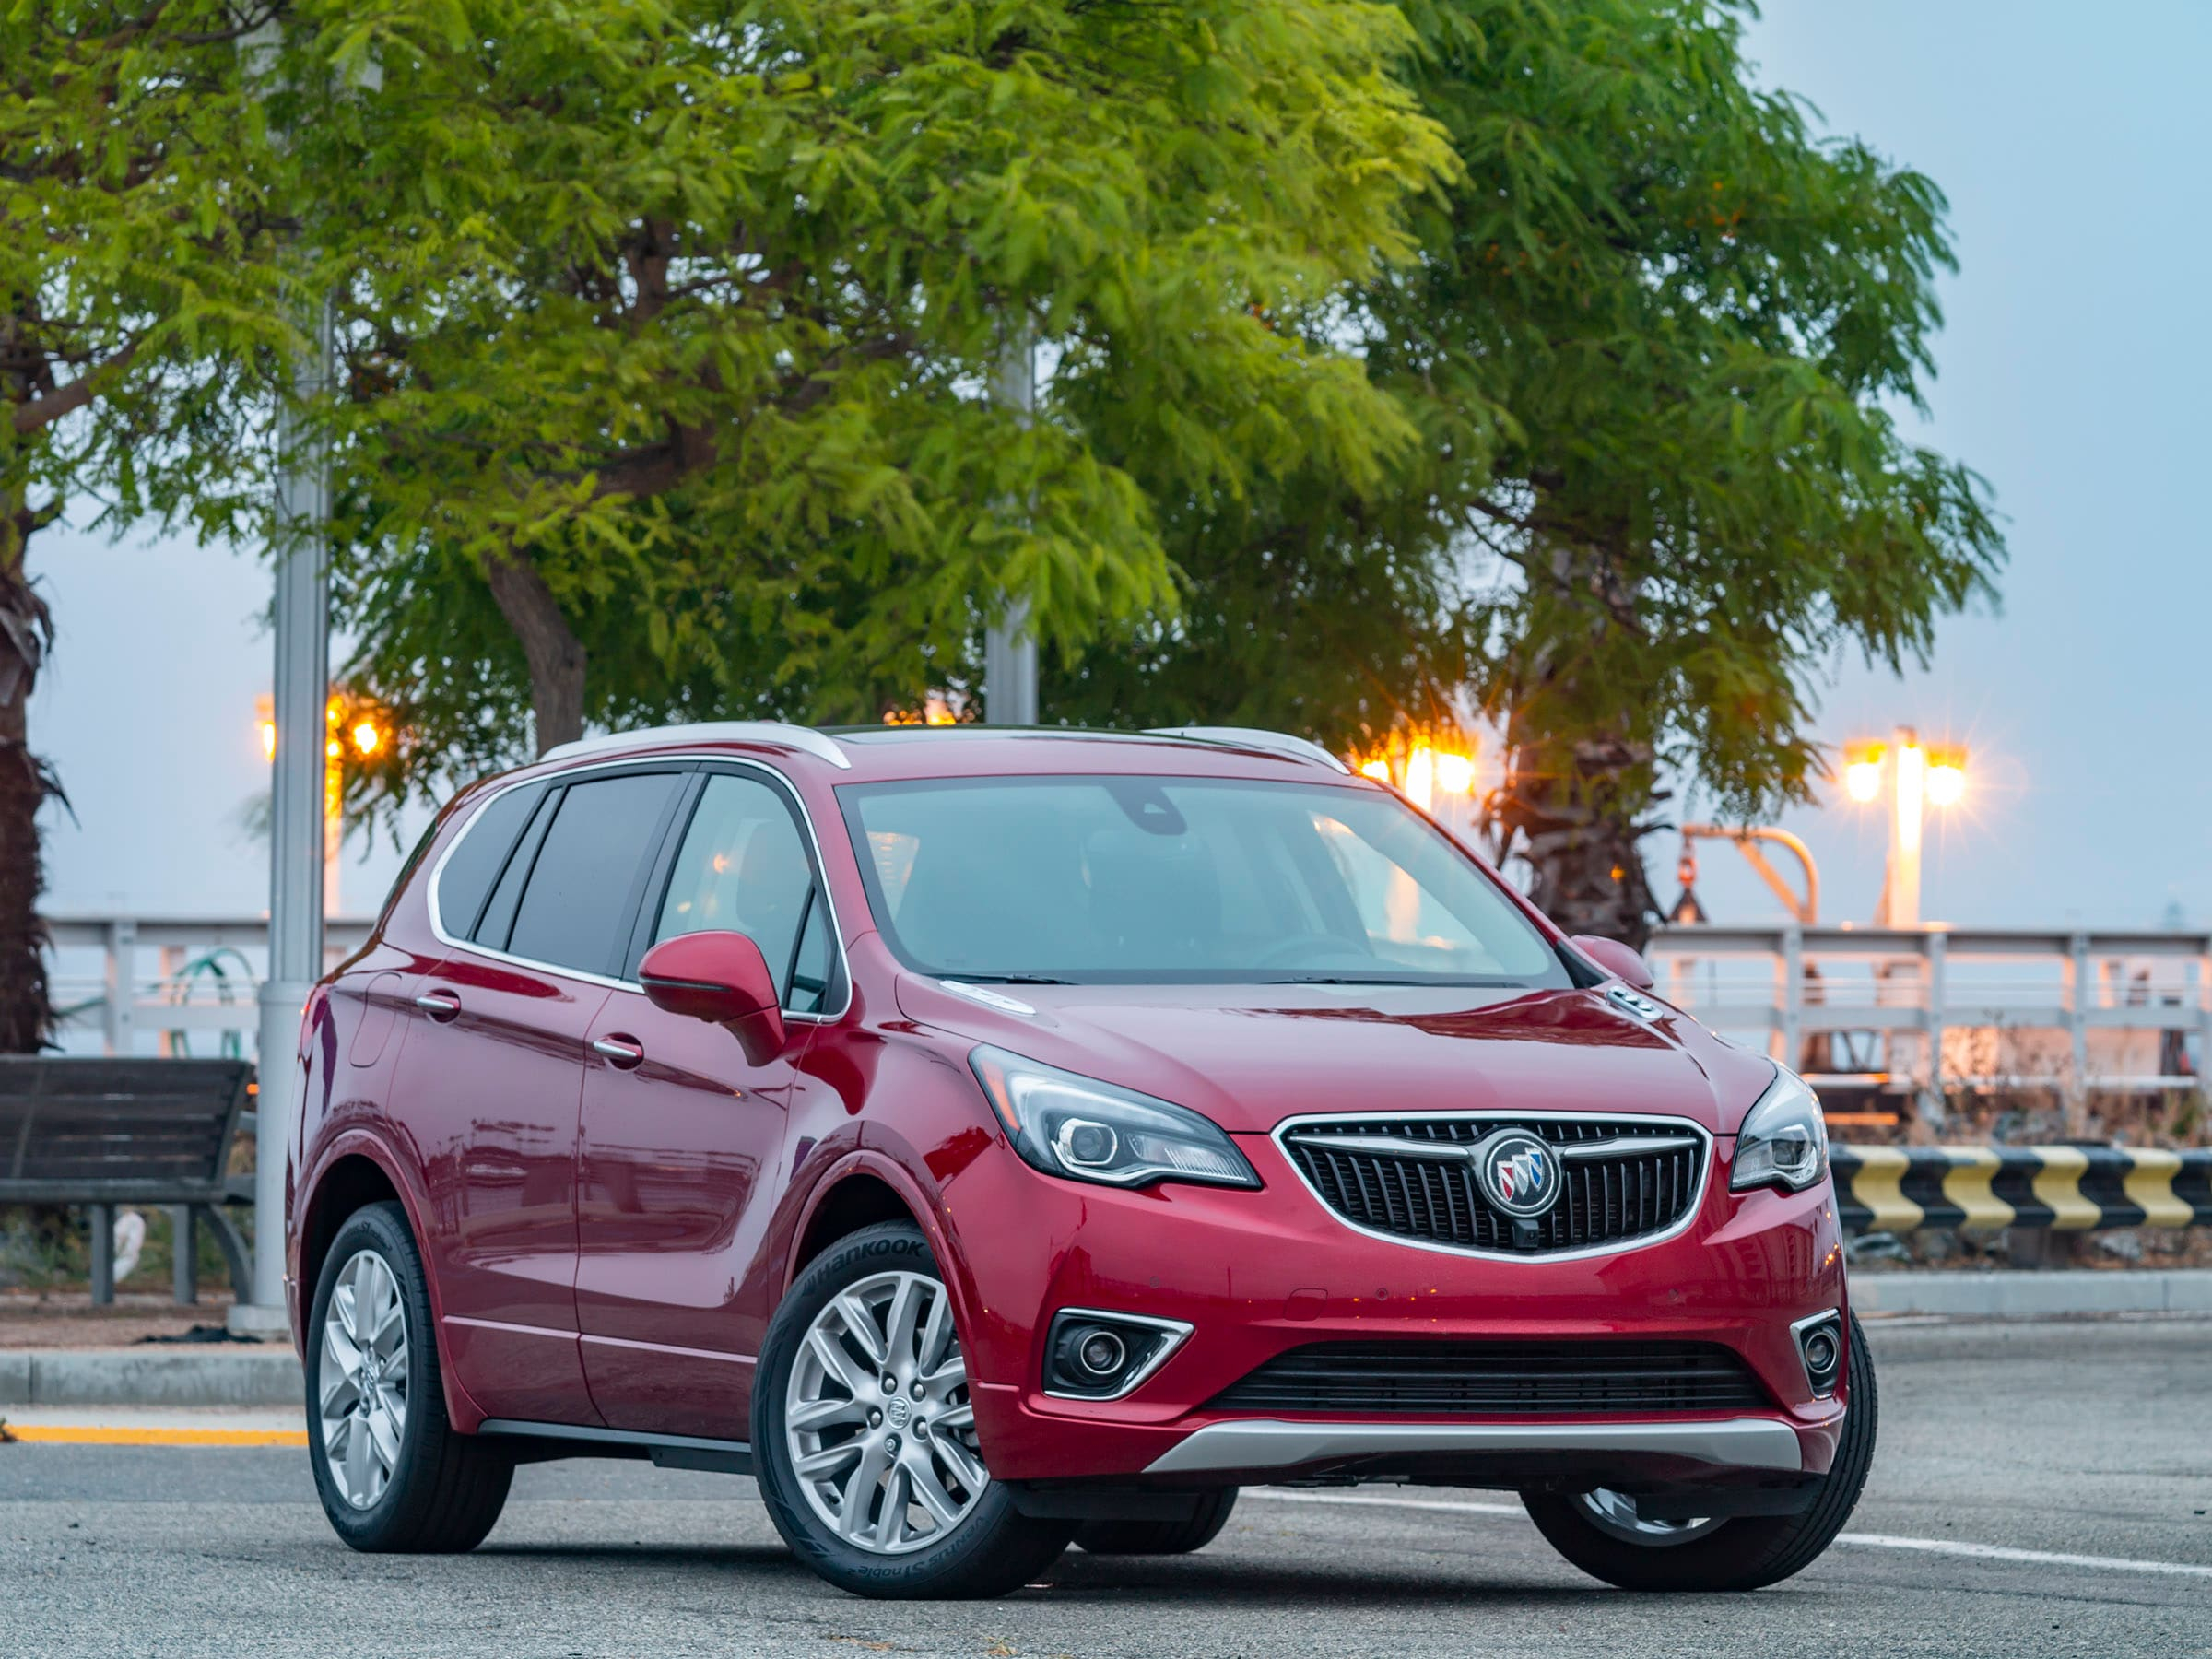 2020 Kia Sportage Vs. 2019 Buick Envision Comparison 2022 Buick Envision Mpg, Models, Manual